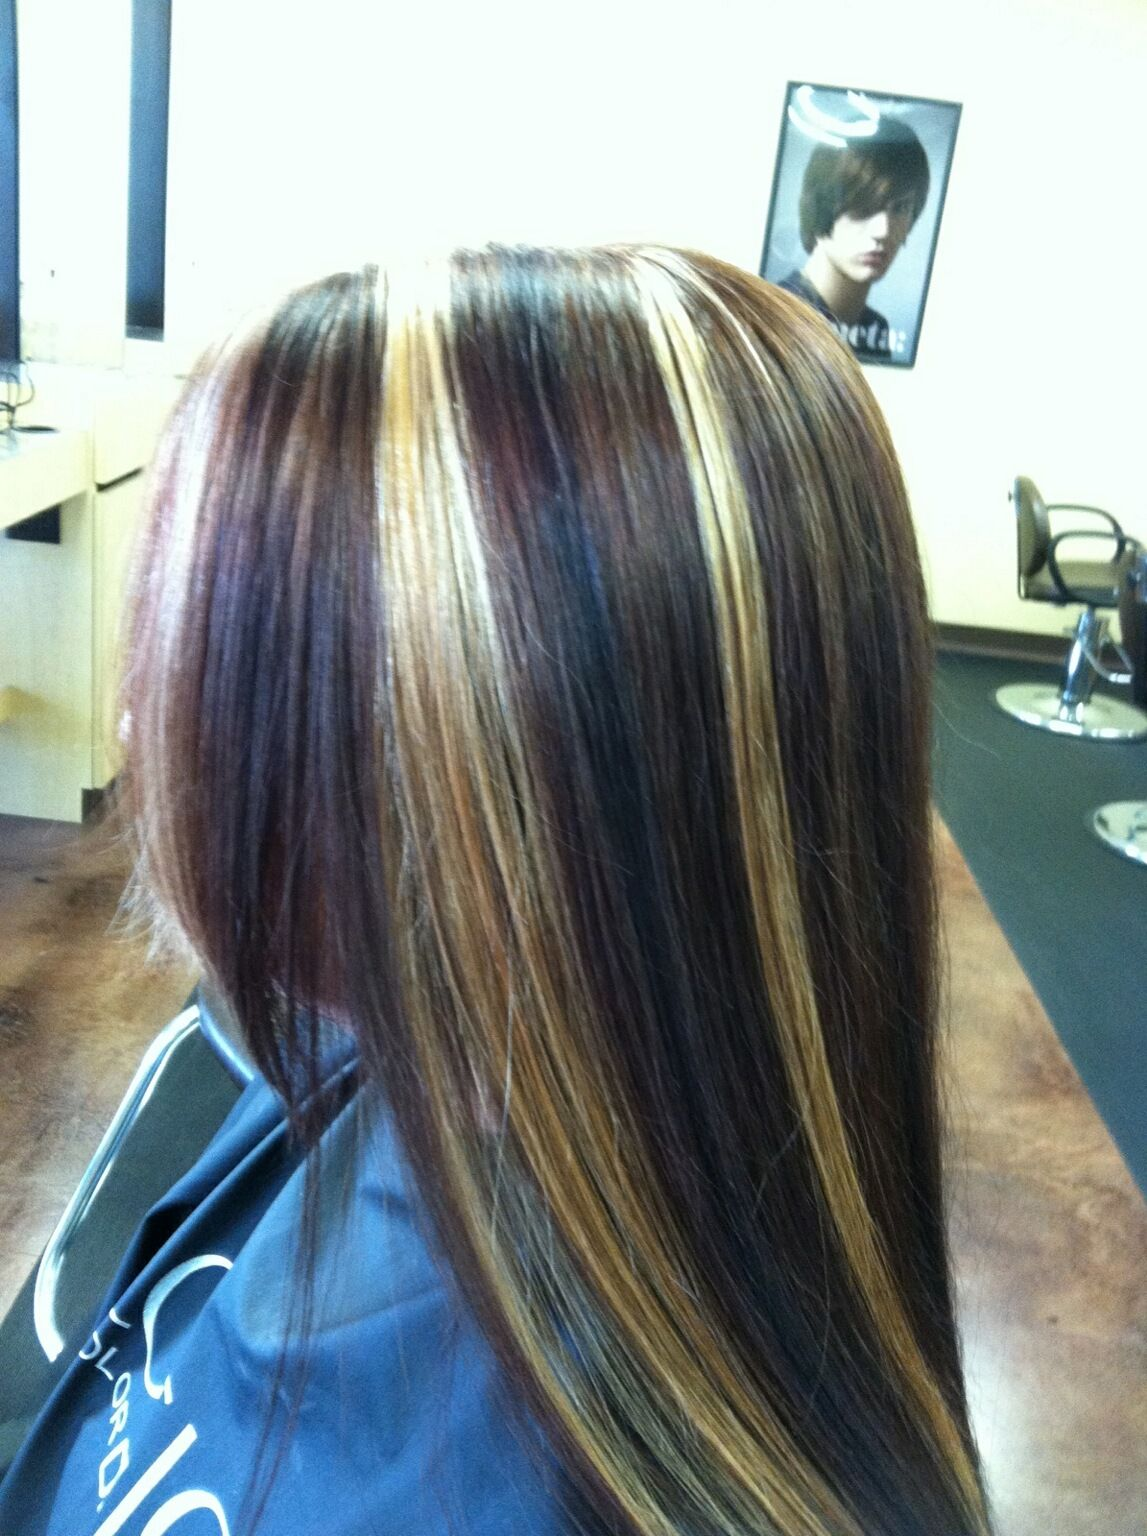 Matrix mocha with blonde highlights and violet red low